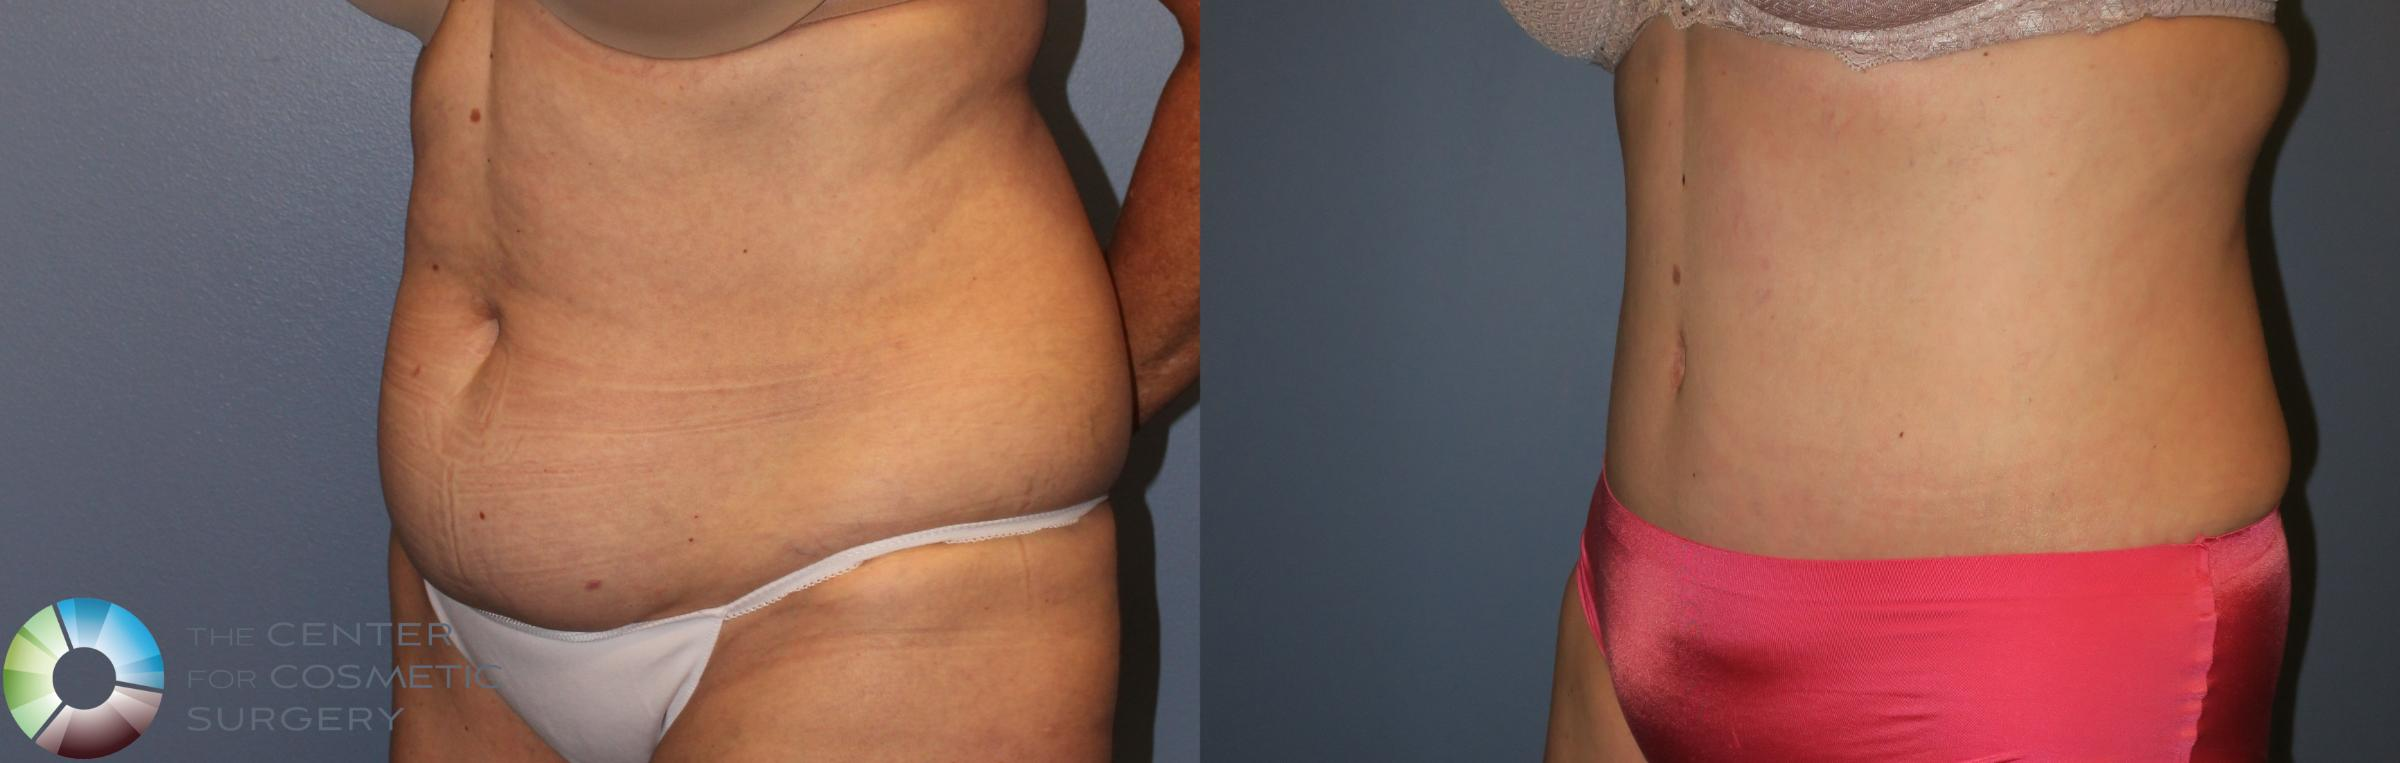 Tummy Tuck Case 954 Before & After View #1 | Golden, CO | The Center for Cosmetic Surgery